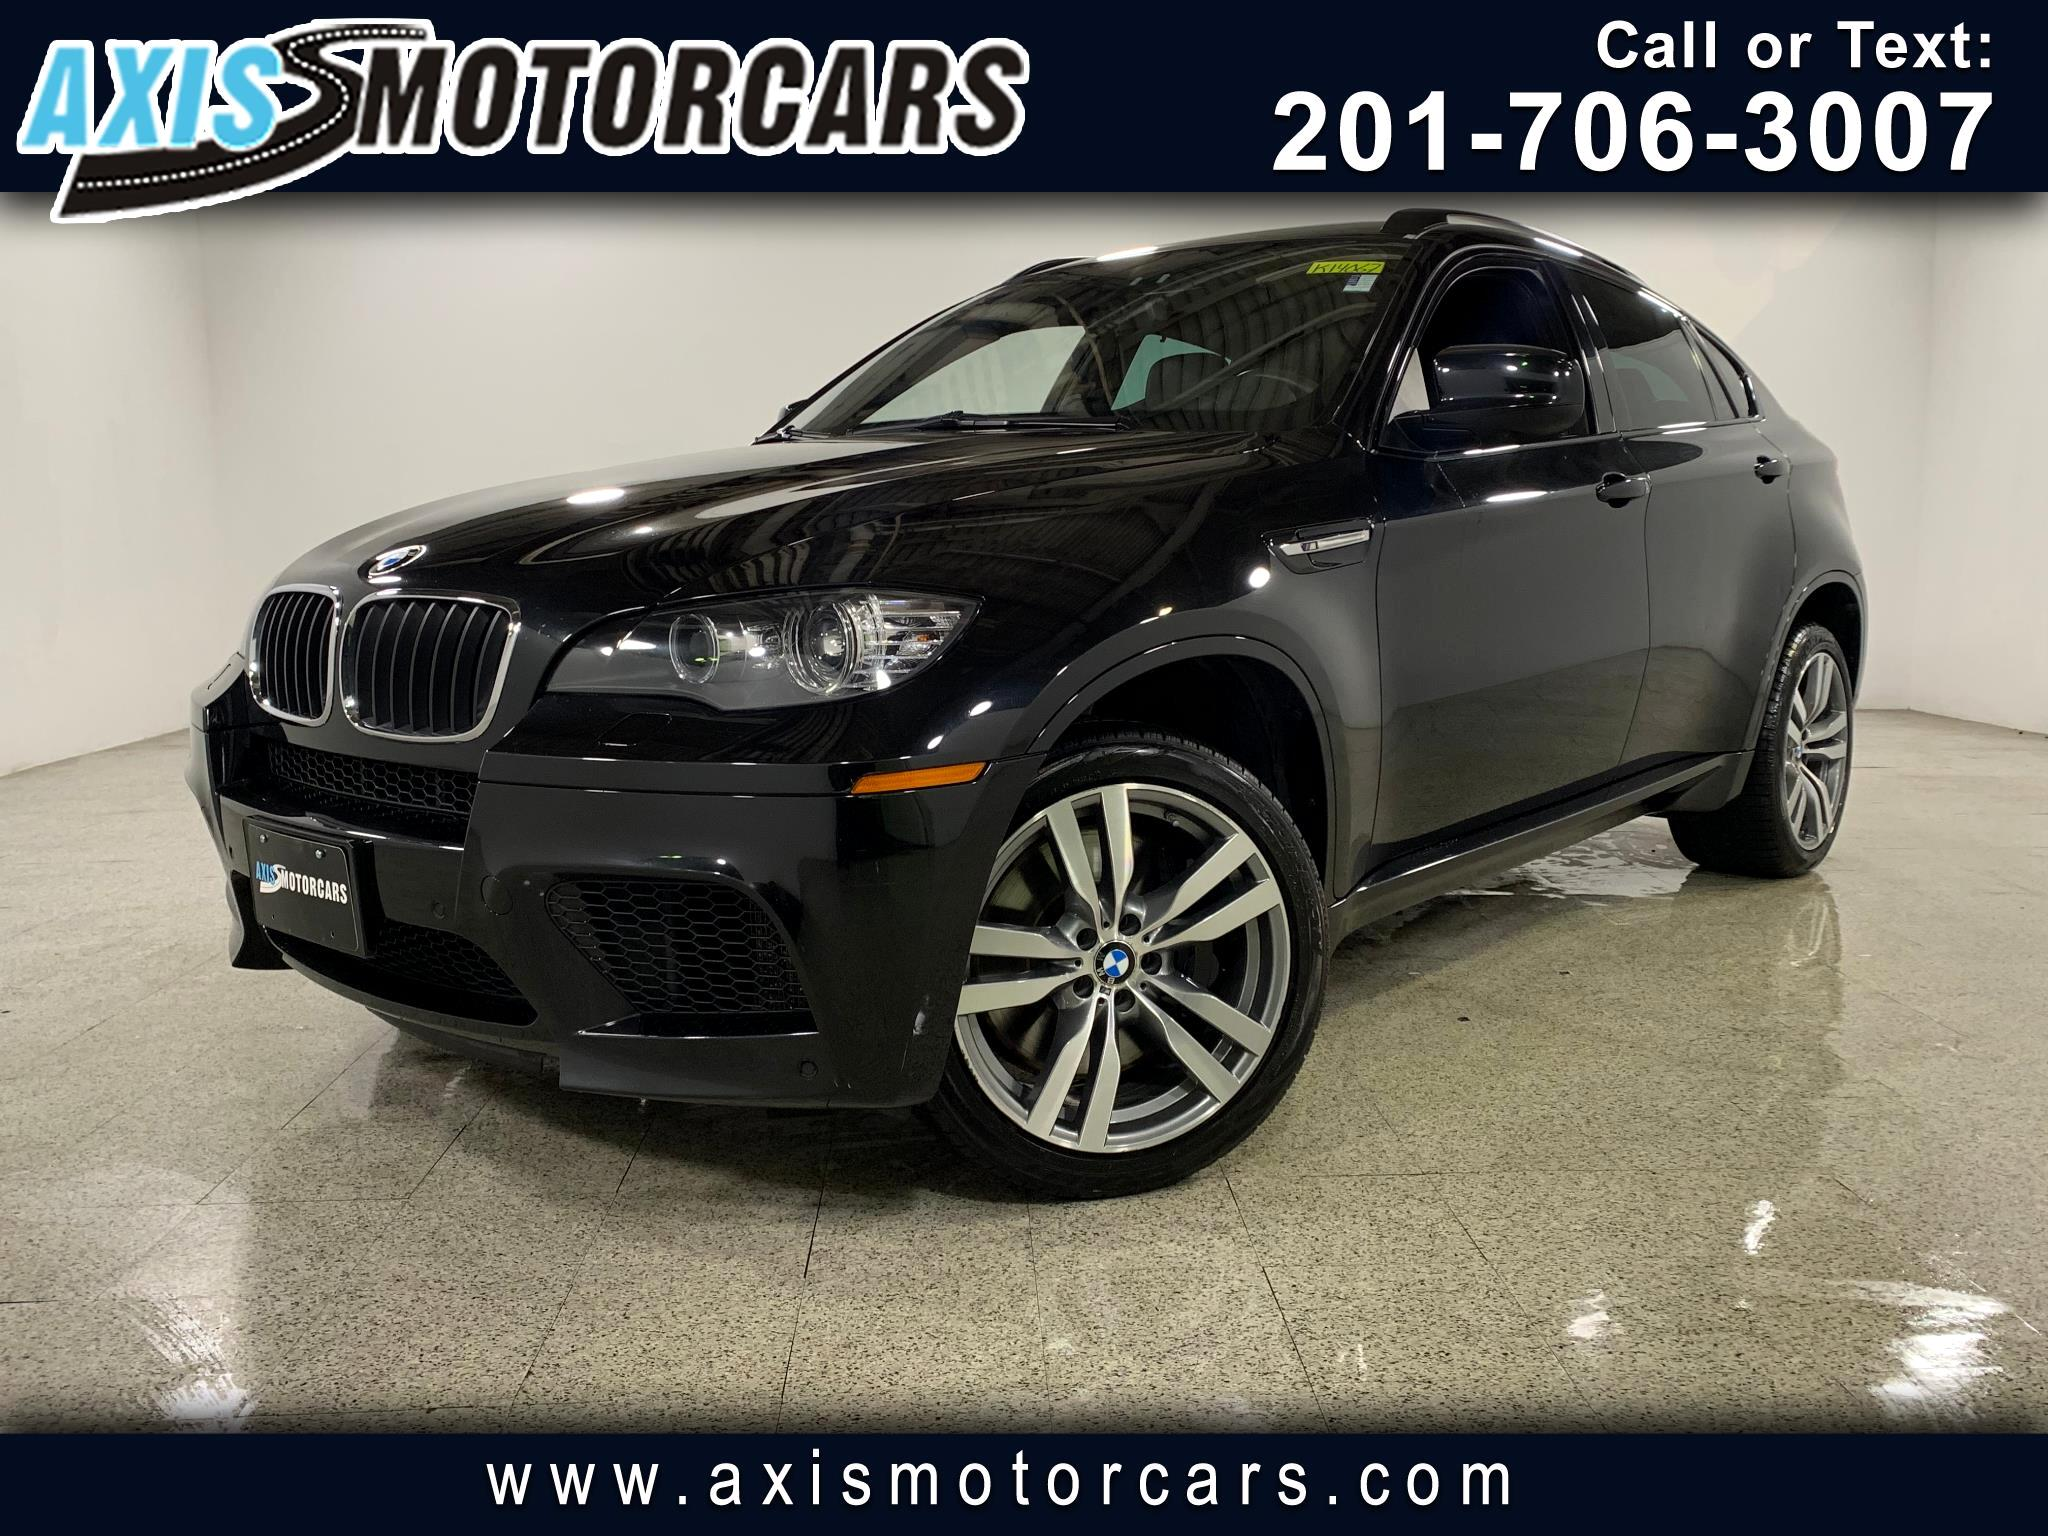 2011 BMW X6 M Pkg w/Navigation Bakup Camera Sunroof